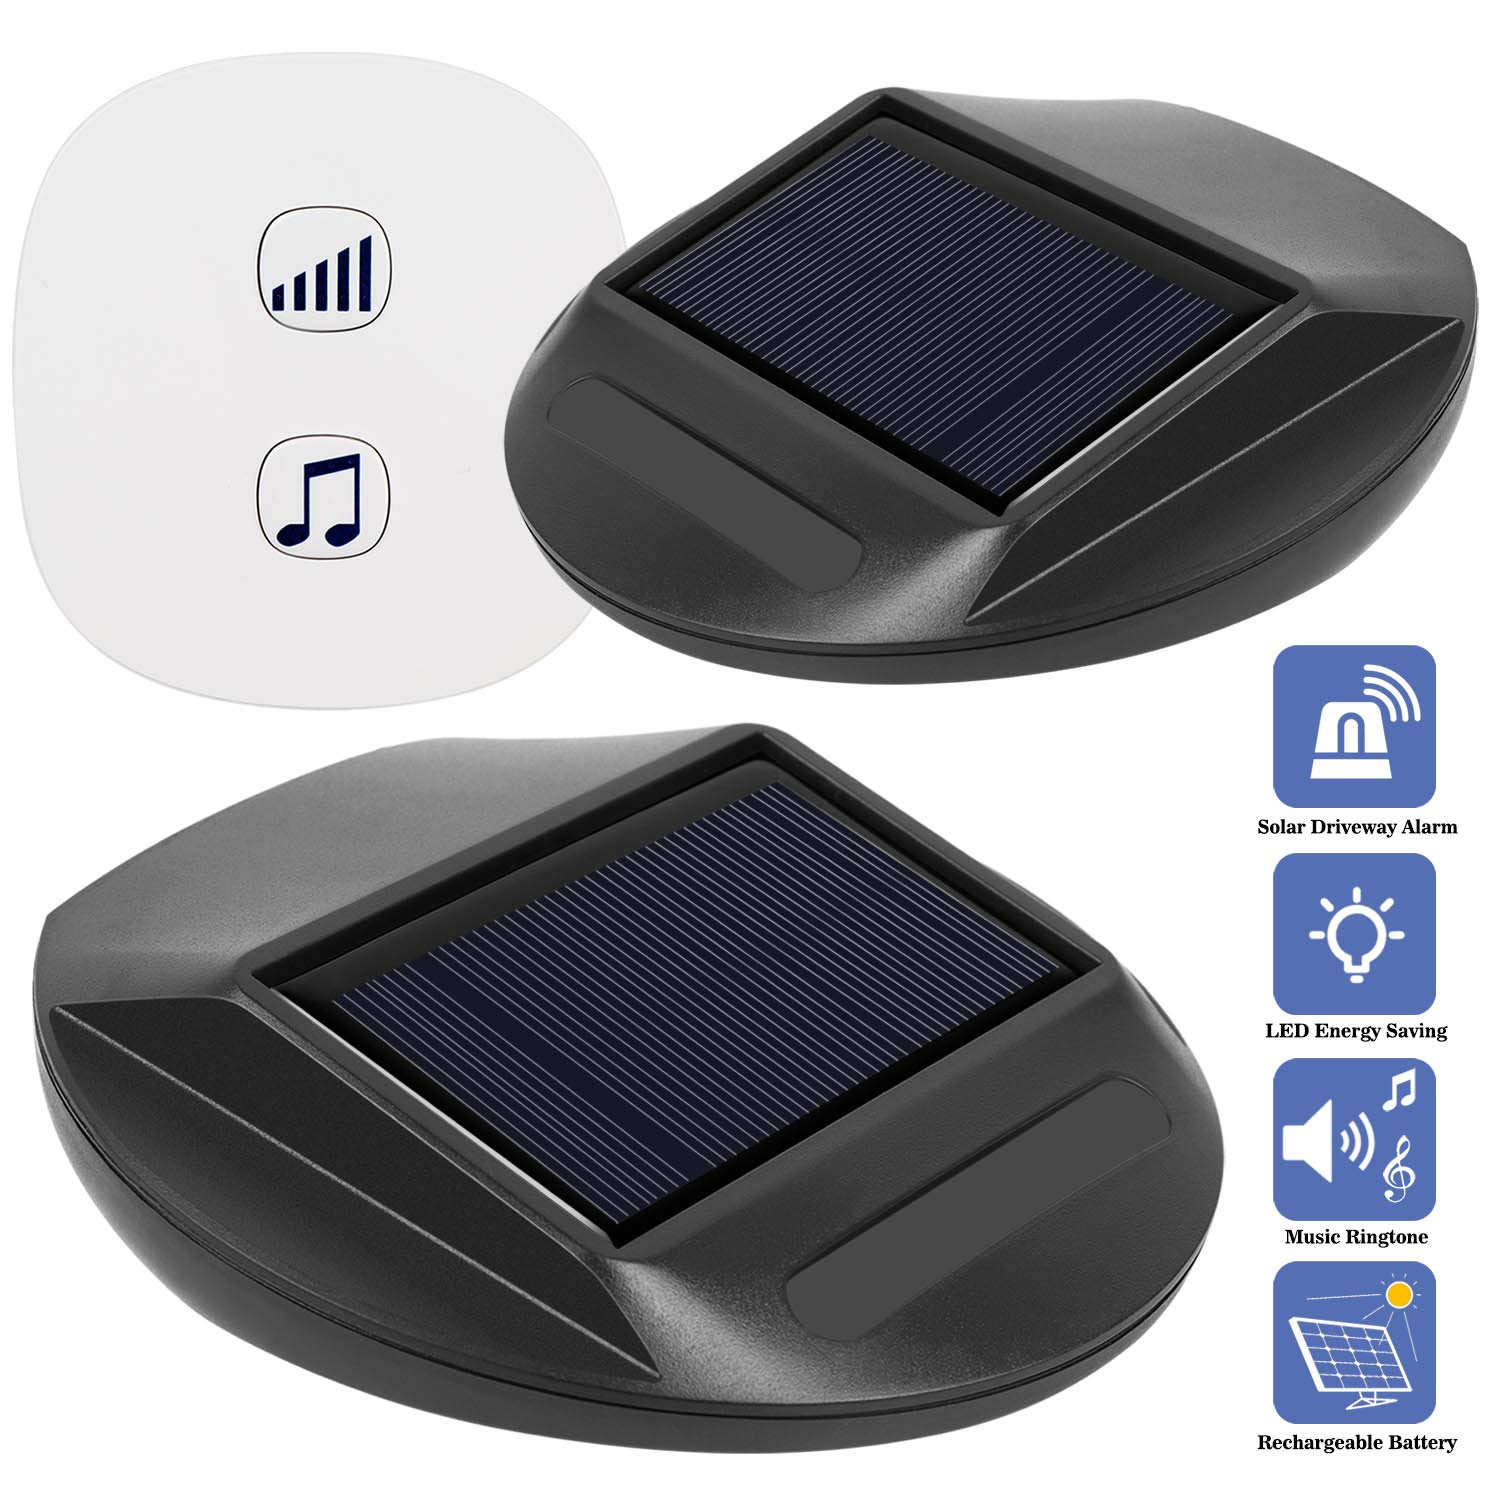 Seanme Solar Motion Sensor Alarm,Solar Lights, Wireless Driveway Alarm, Outdoor,Indoor Weatherproof Business Detect Alert with 2 Sensor and 1 Receiver,38 Chime Tunes - LED Indicators by seanme